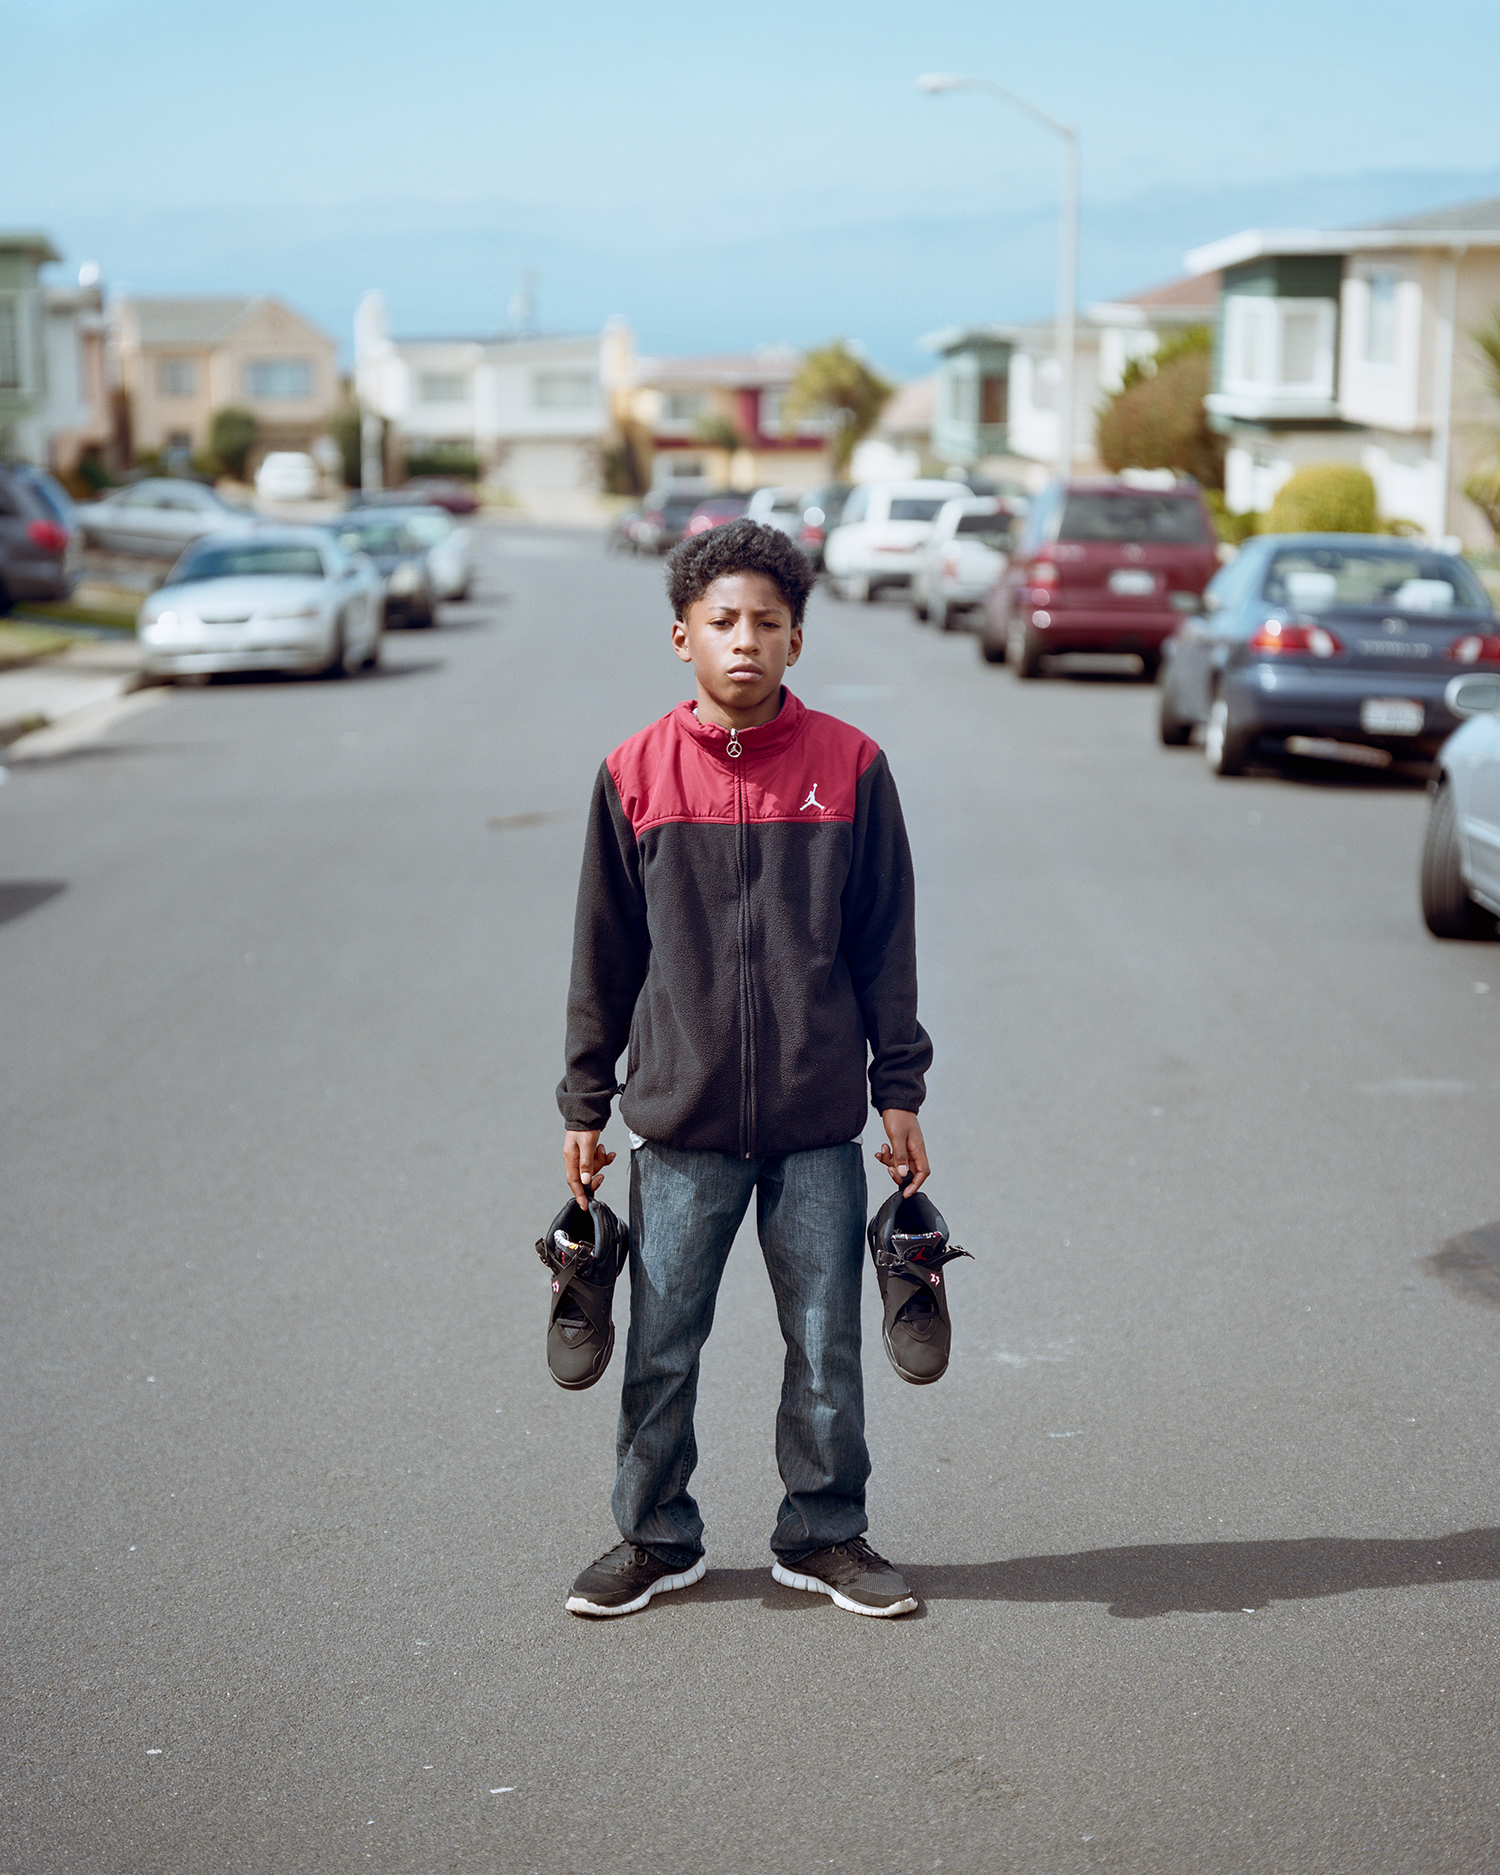 Boy w/ J's, Daly City, CA 2014